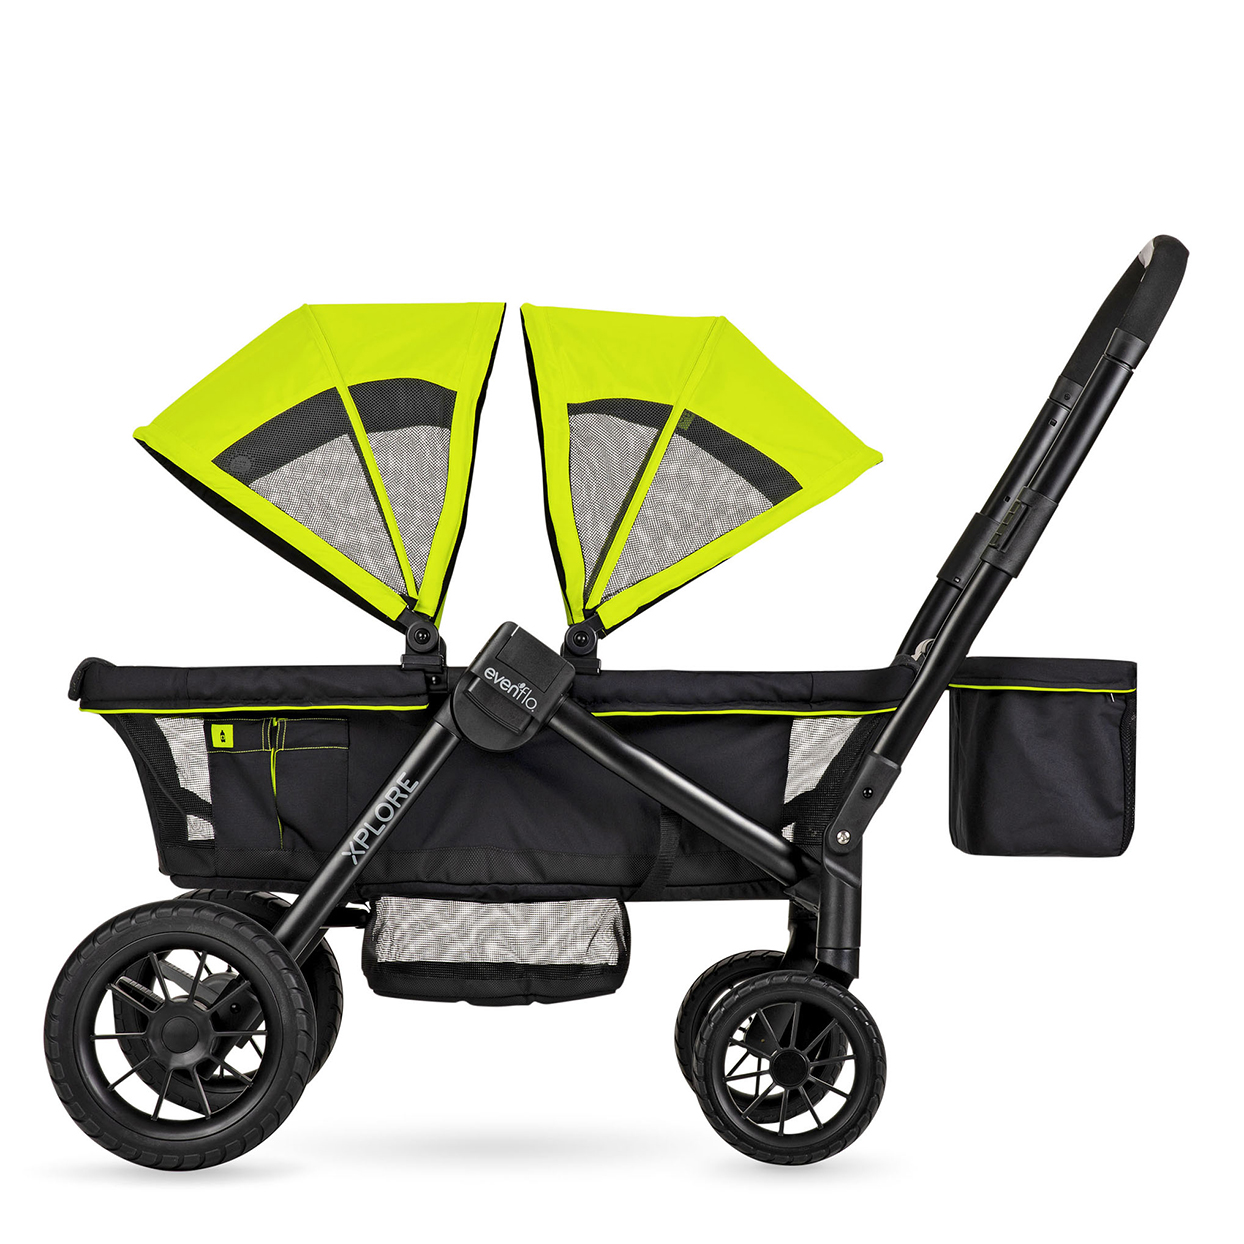 Best Stroller Wagon: Evenflo